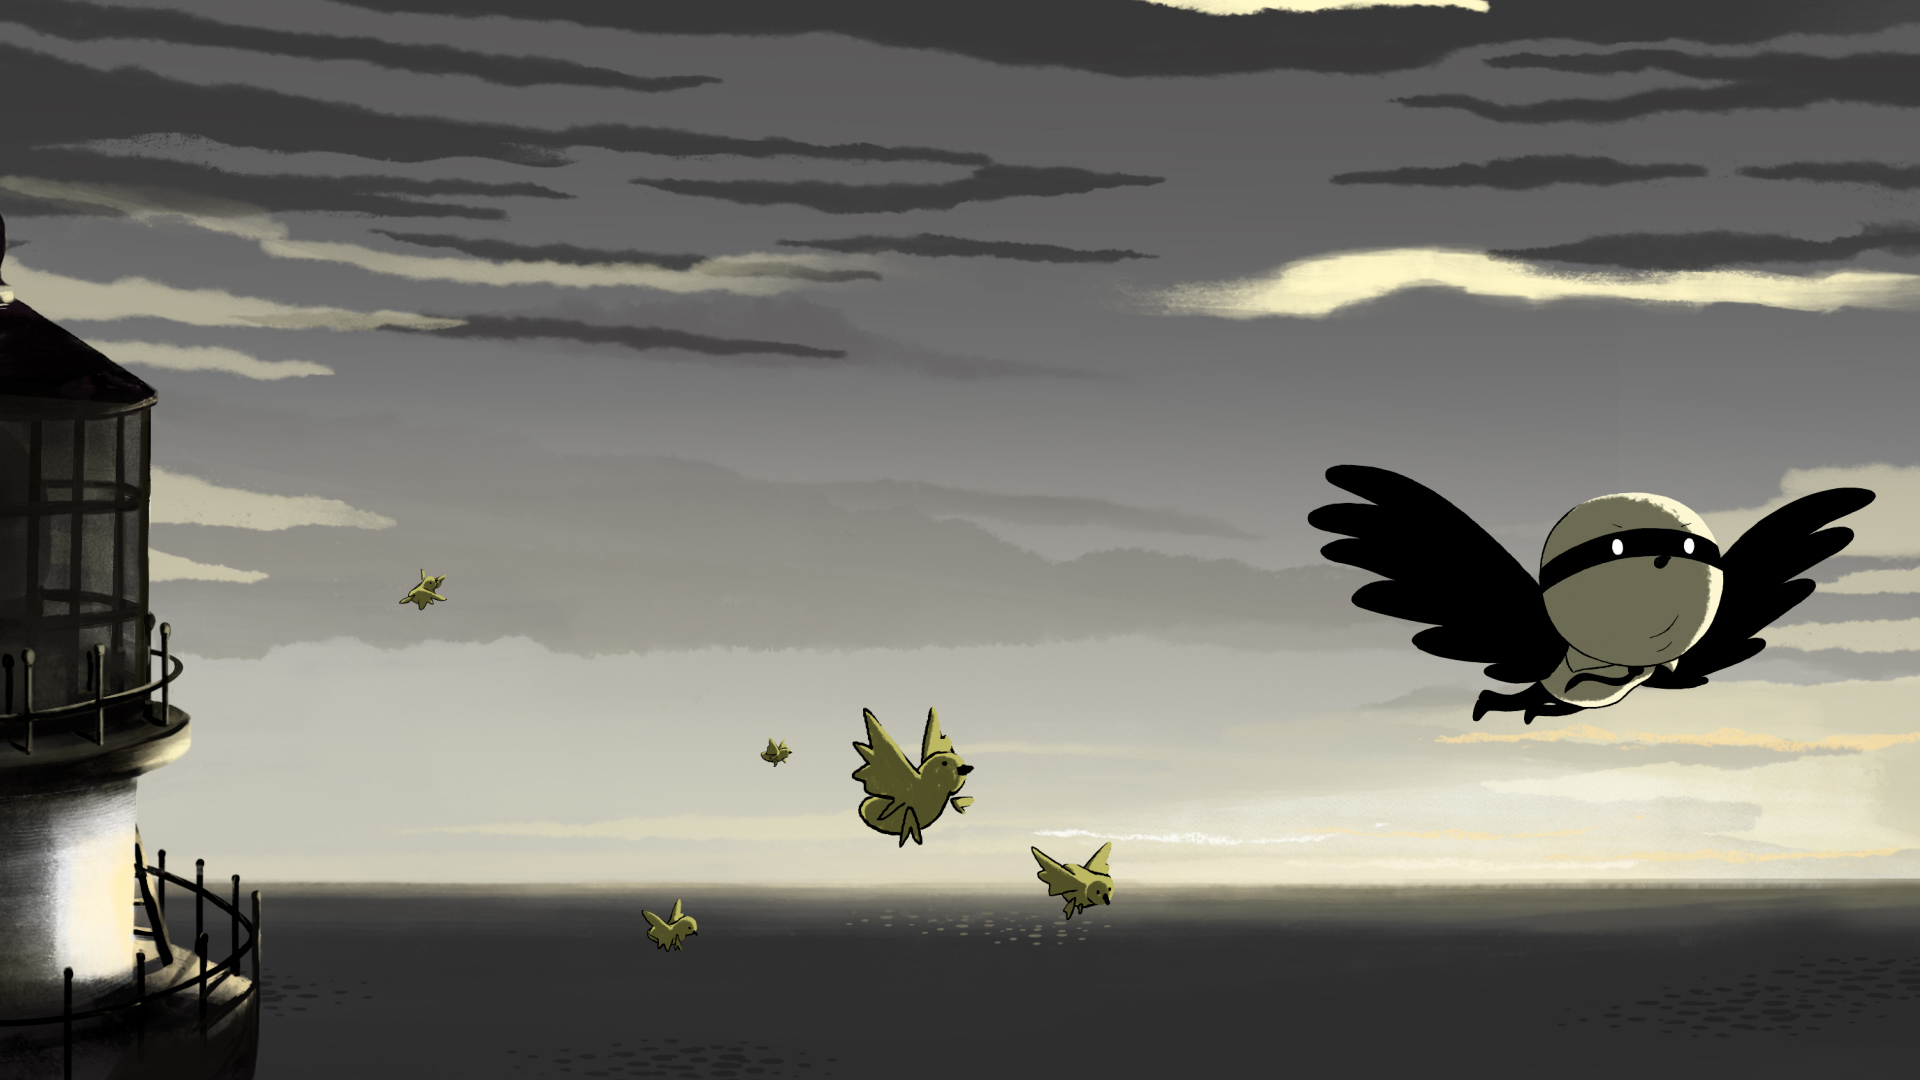 Bird flies through the air in Birdboy